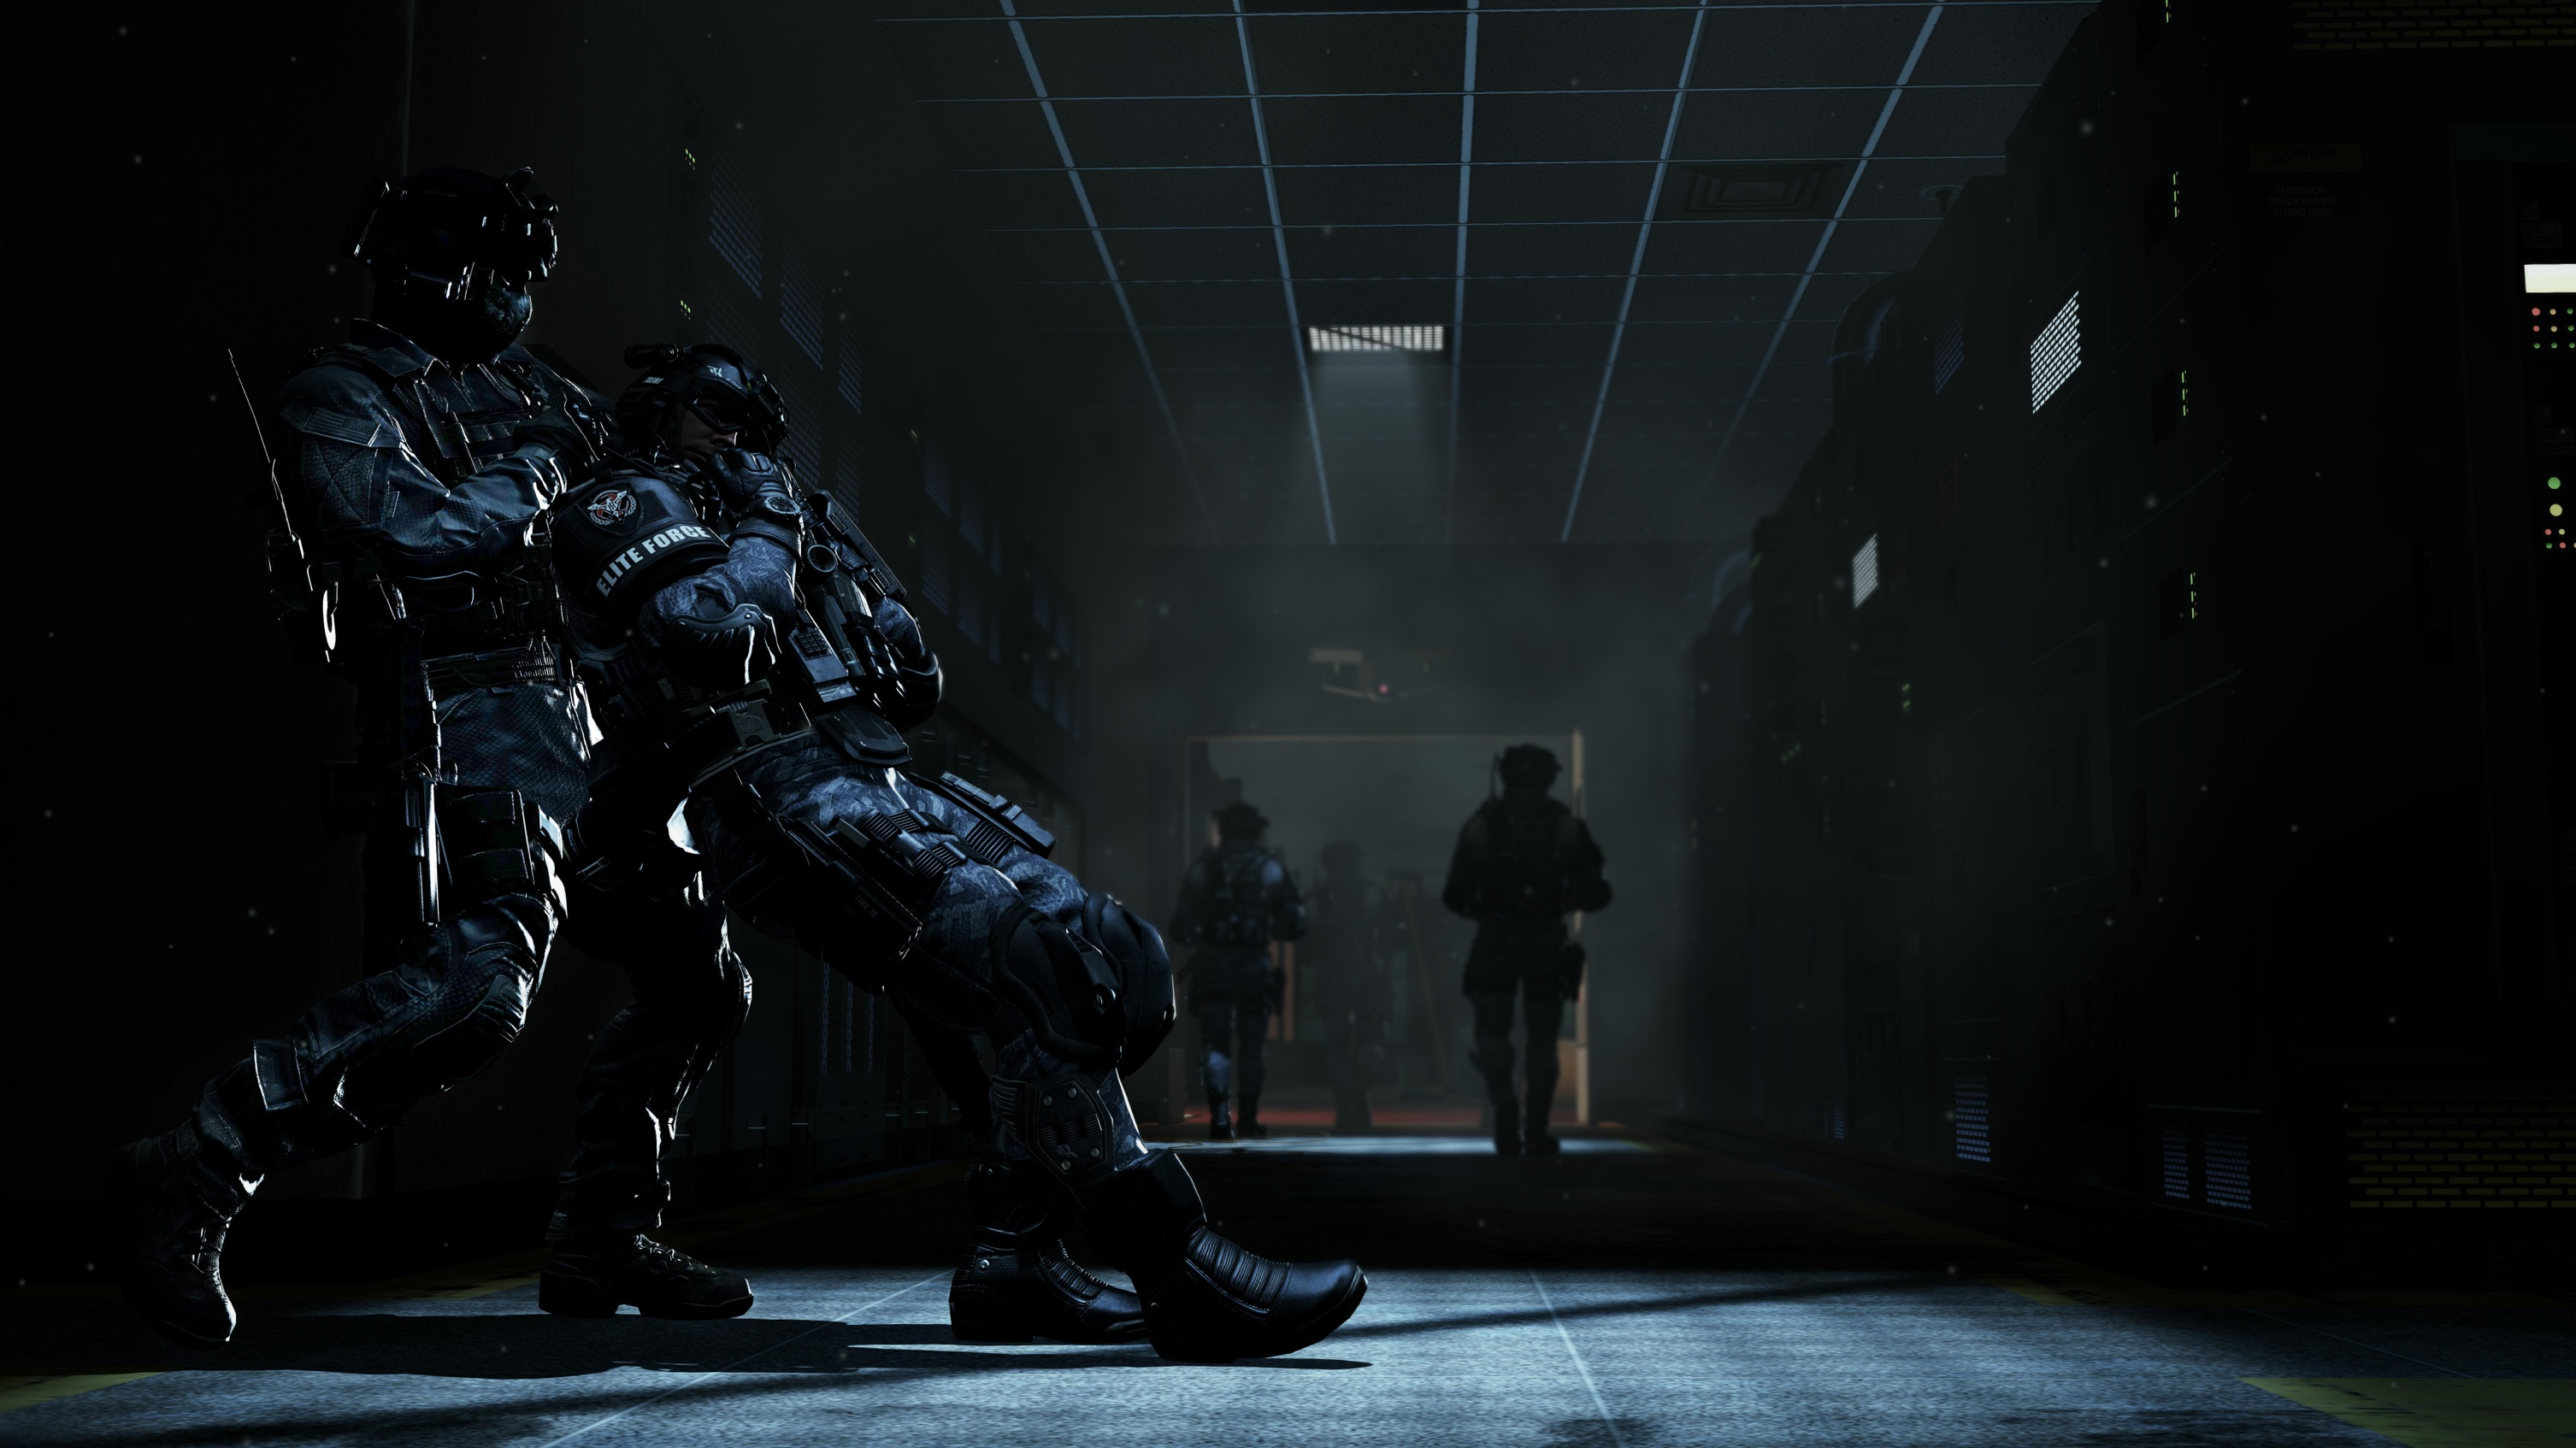 COD_Ghosts_Server_Room_Takedown